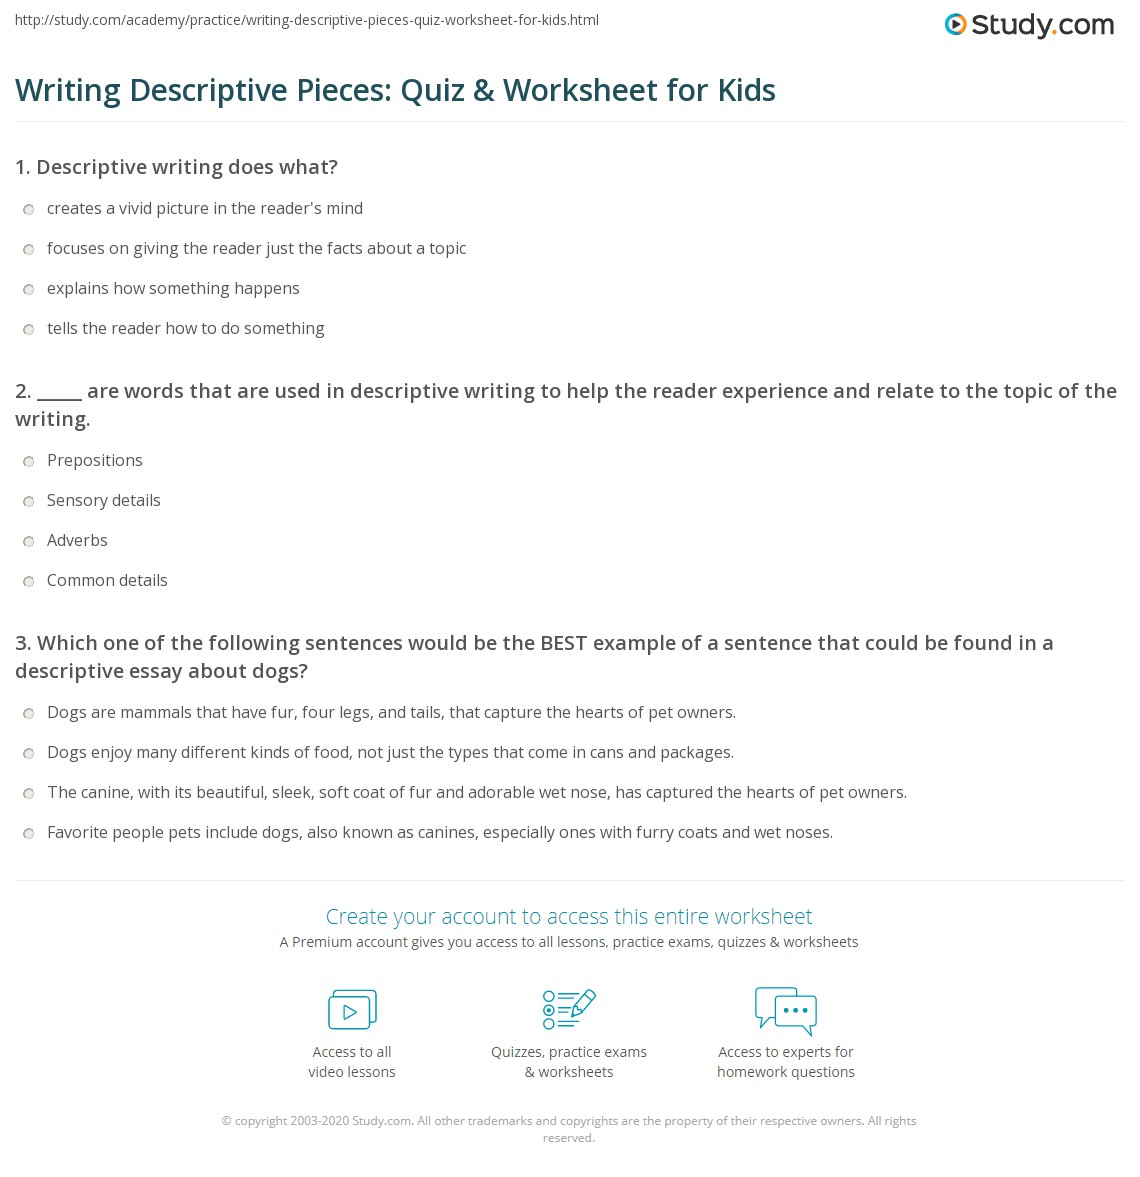 writing descriptive pieces quiz worksheet for kids com print how to write a descriptive paragraph or essay lesson for kids worksheet